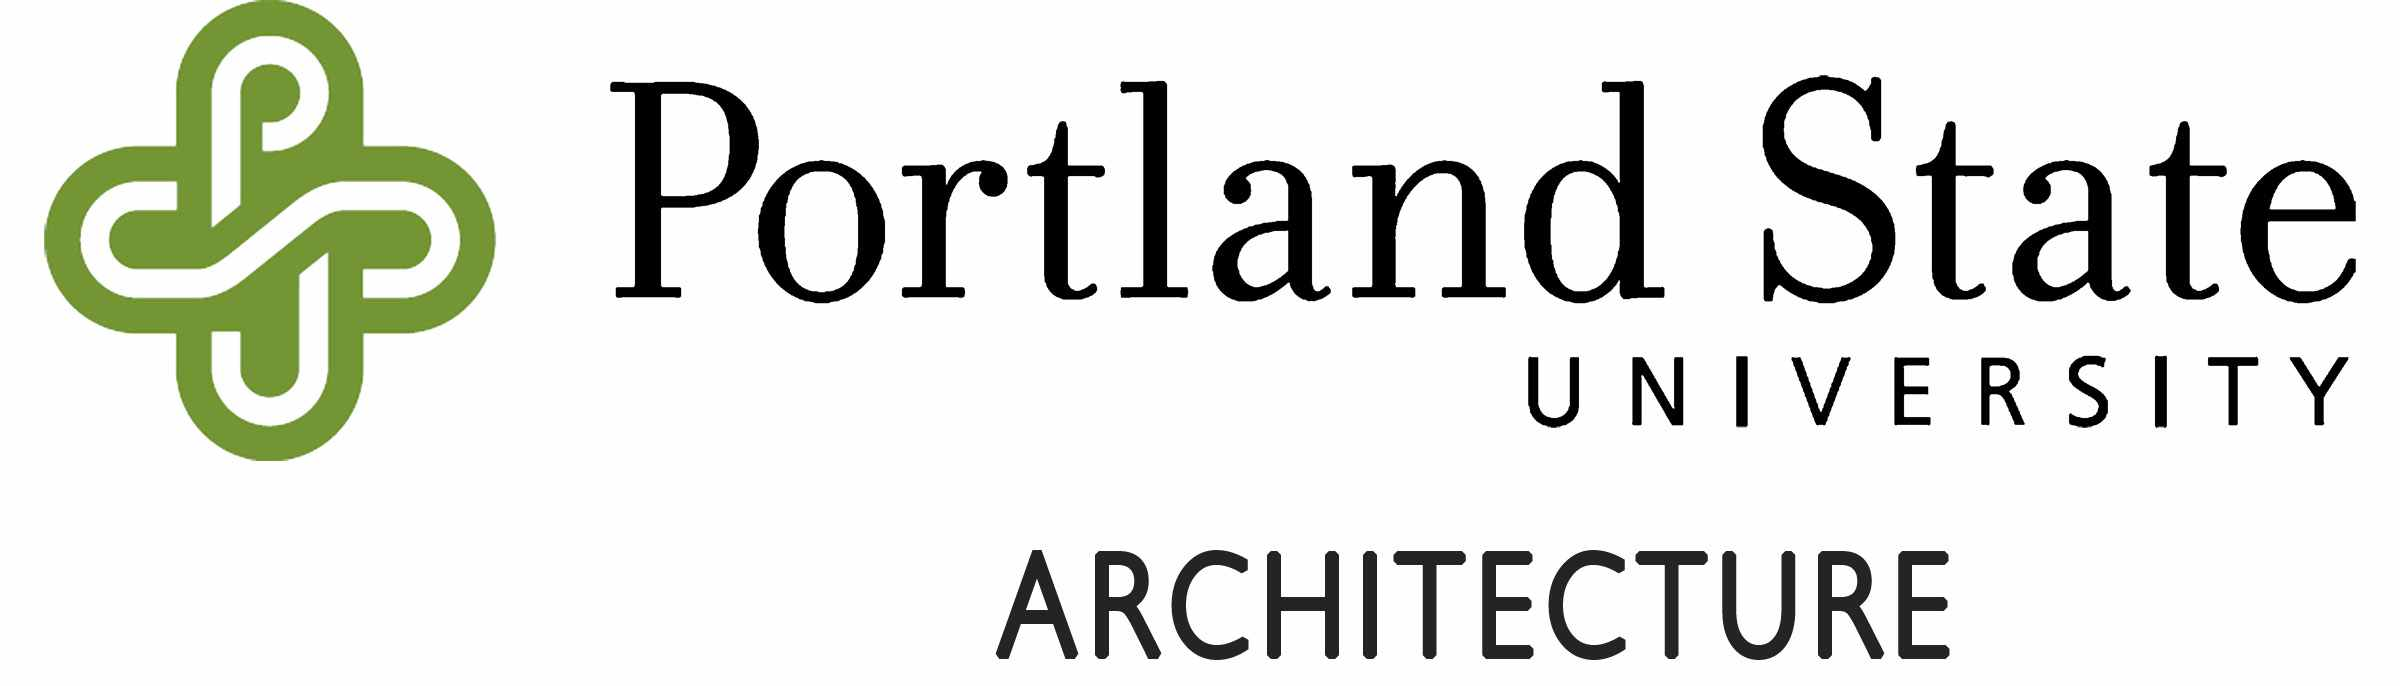 PSU-Architecture-logo